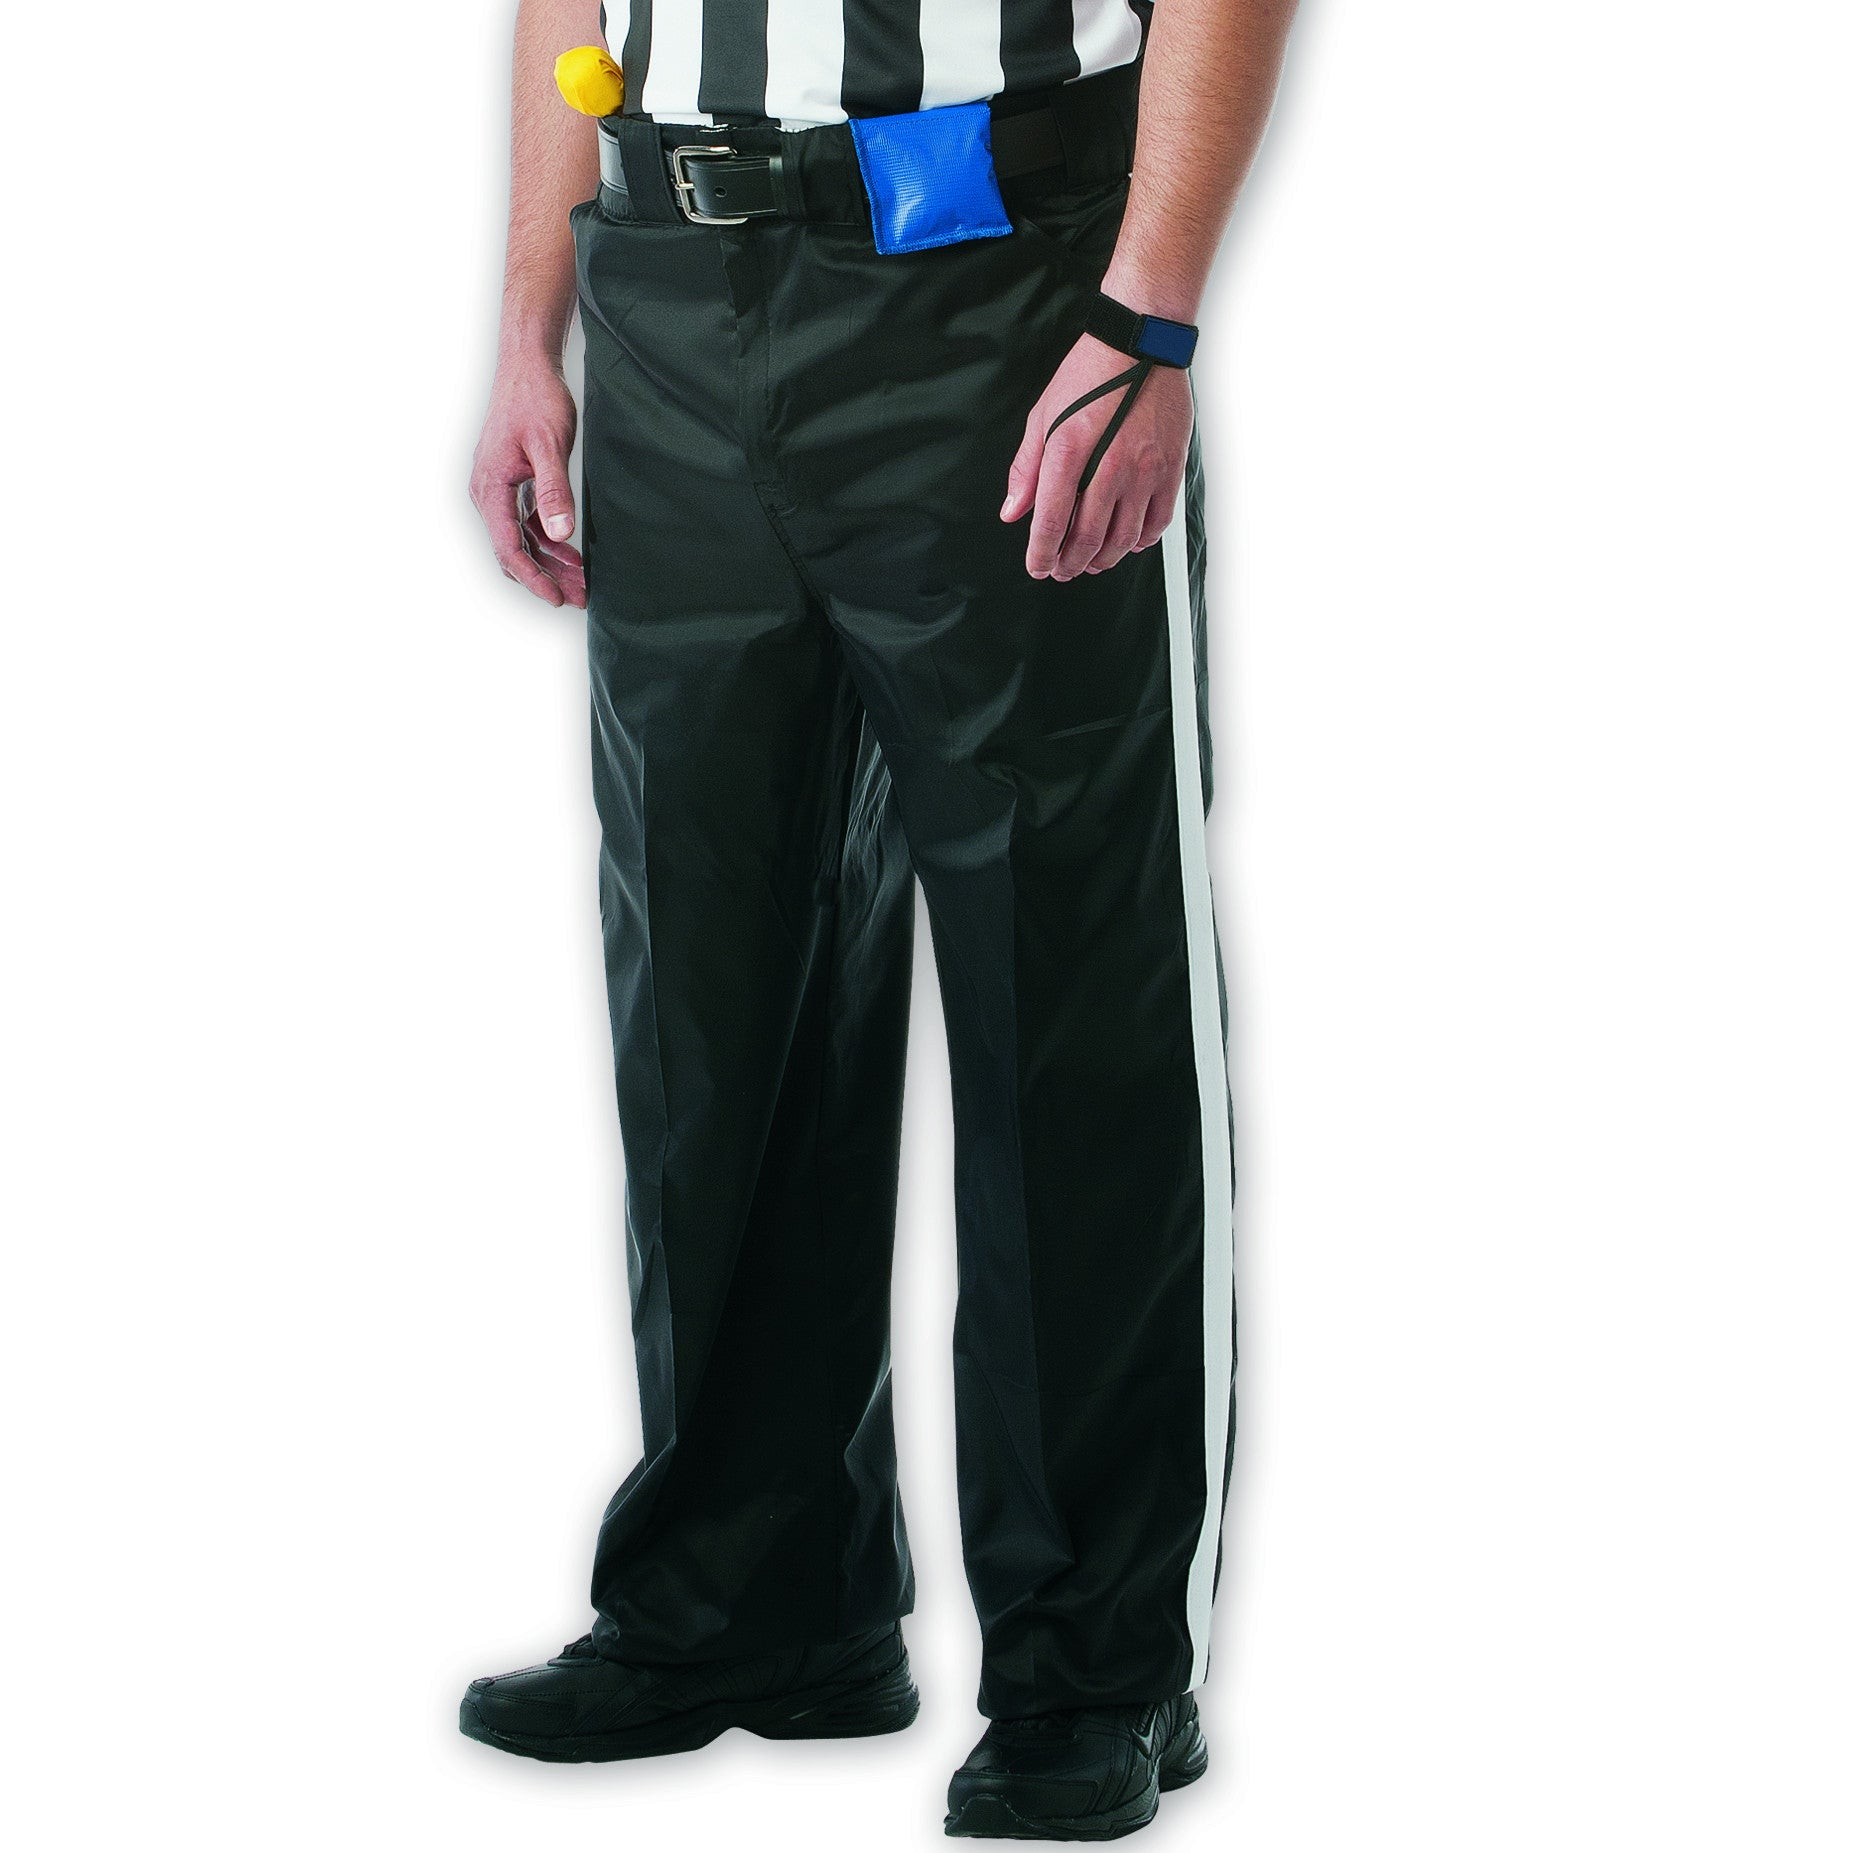 FOOTBALL OFFICIAL PANT